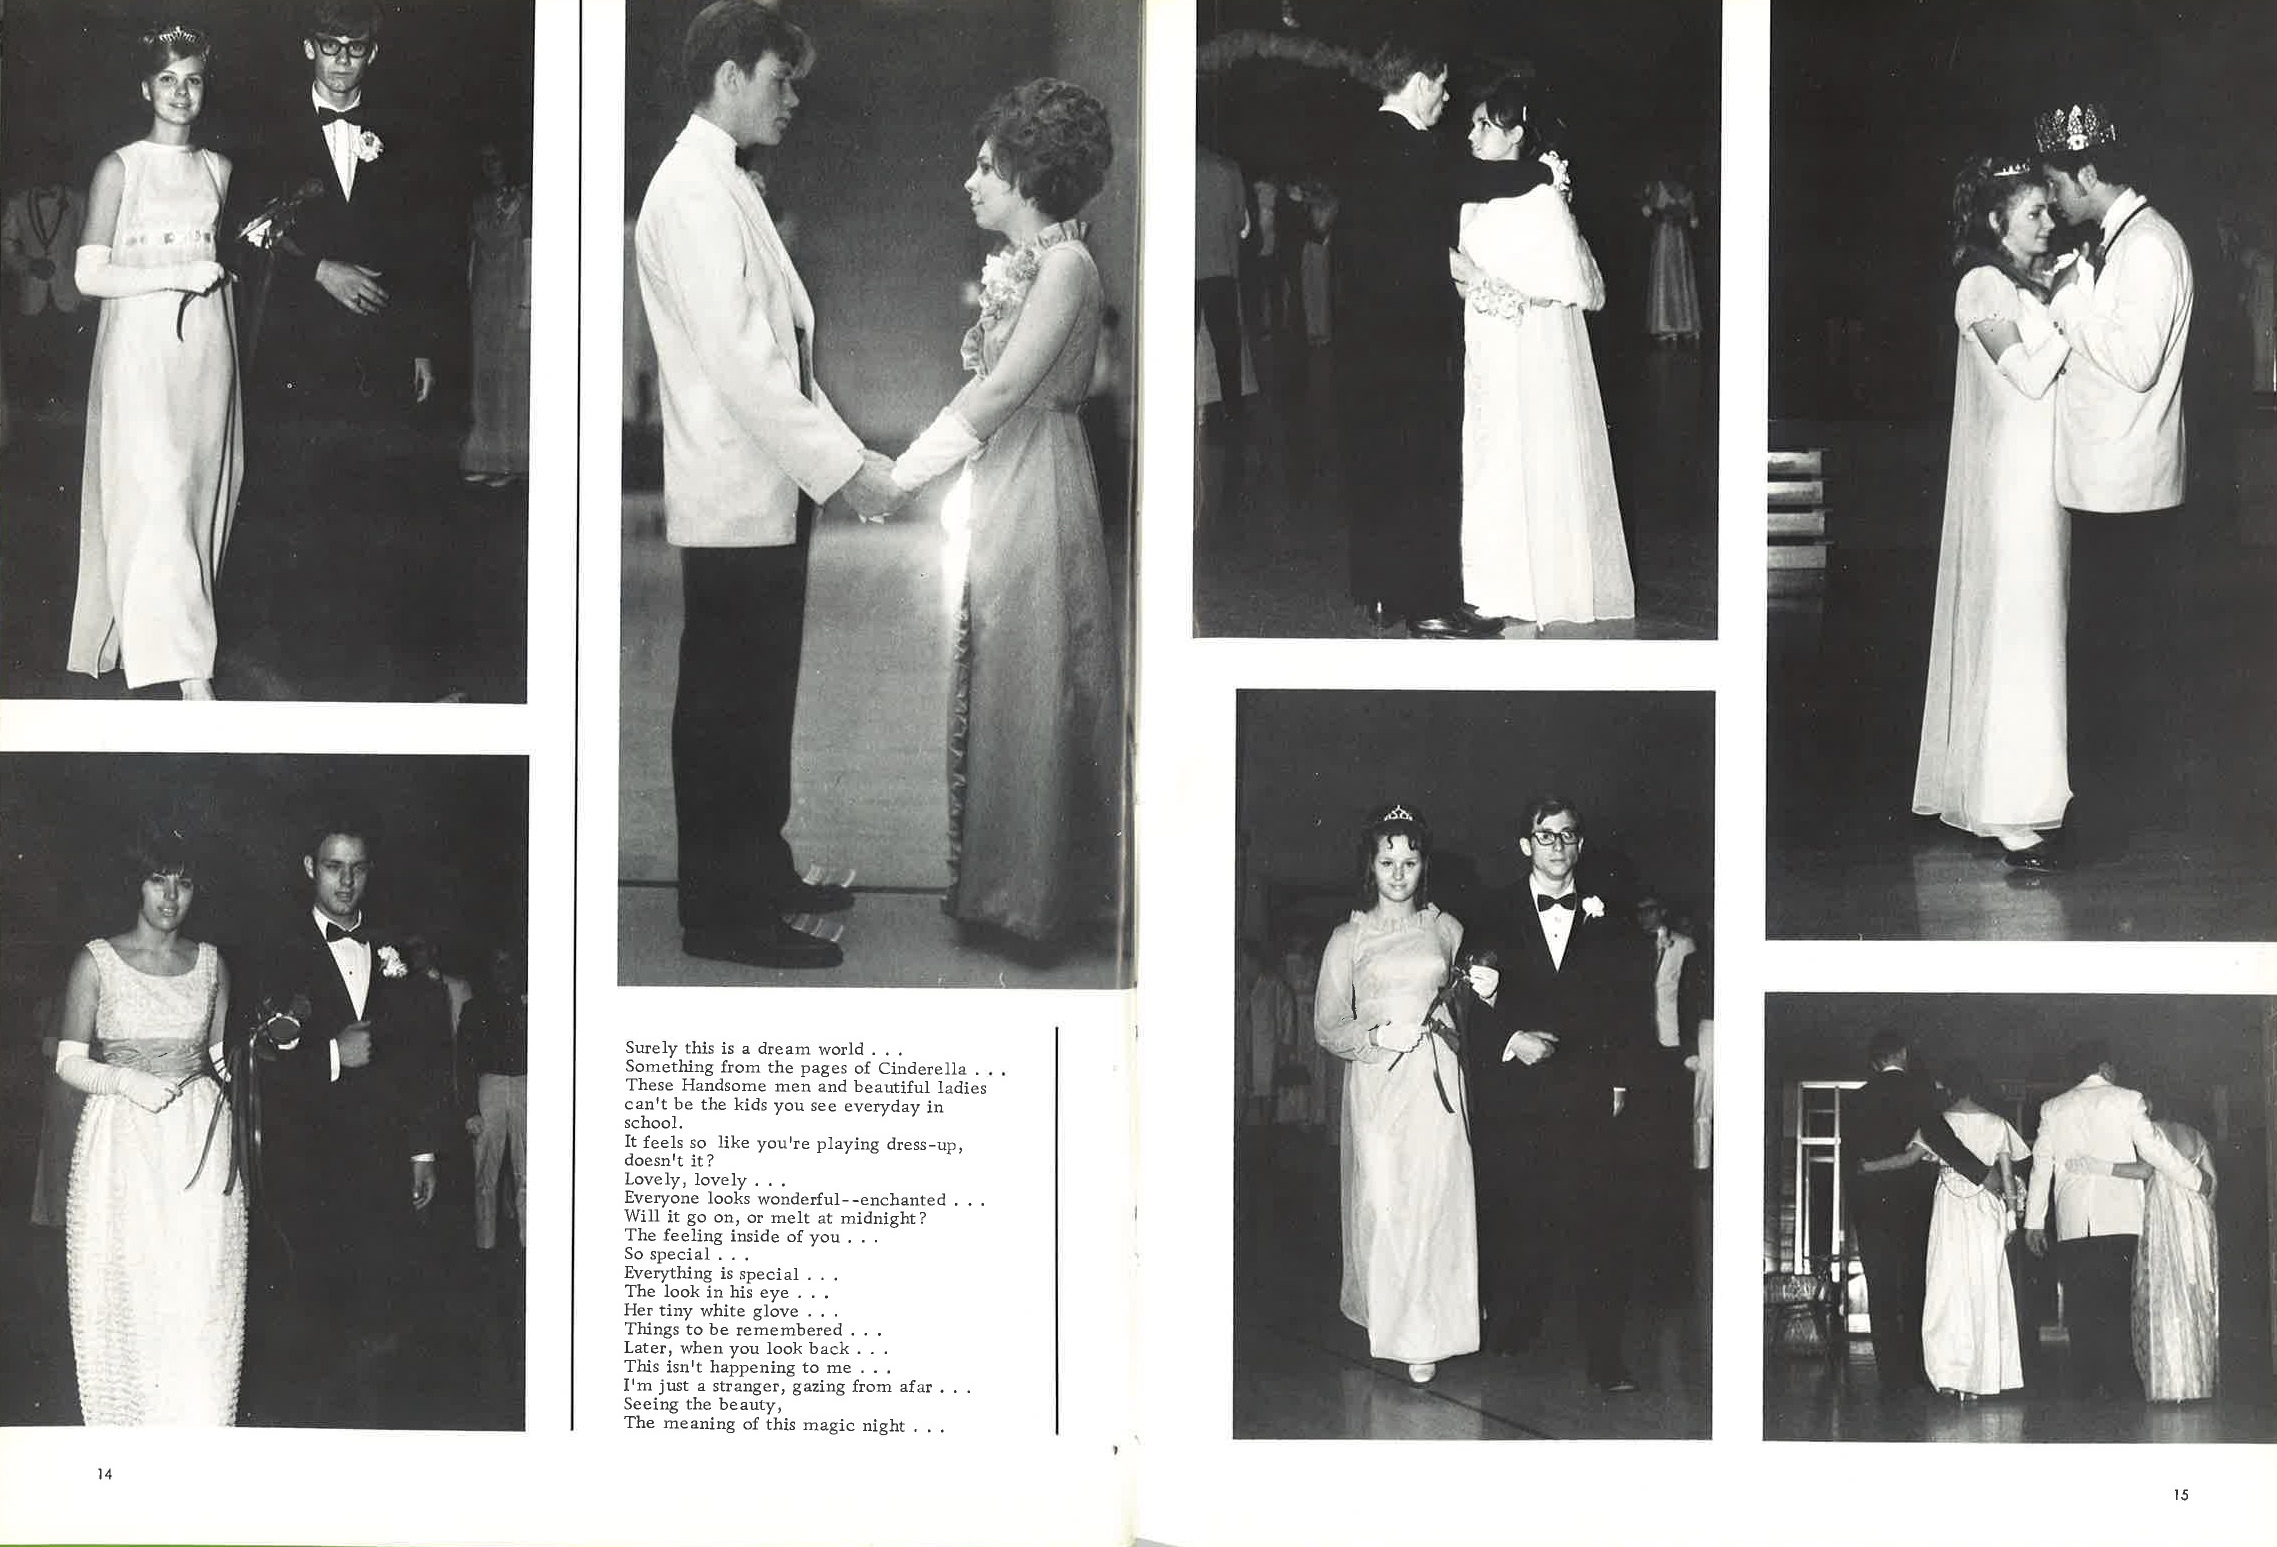 1970_Yearbook_14-15.jpg